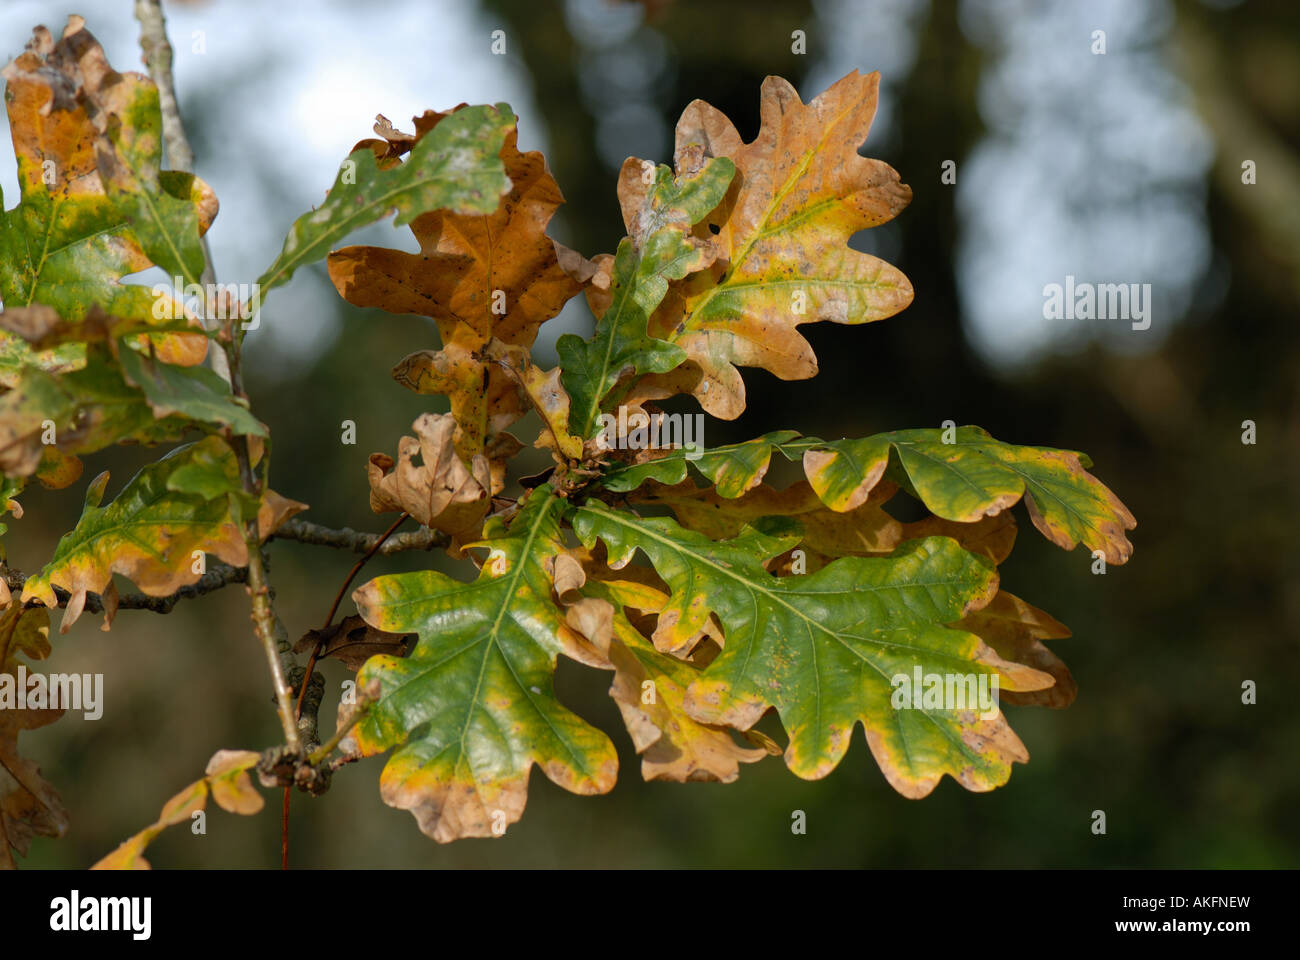 Oak Quercus robur leaves changing colour in autumn - Stock Image